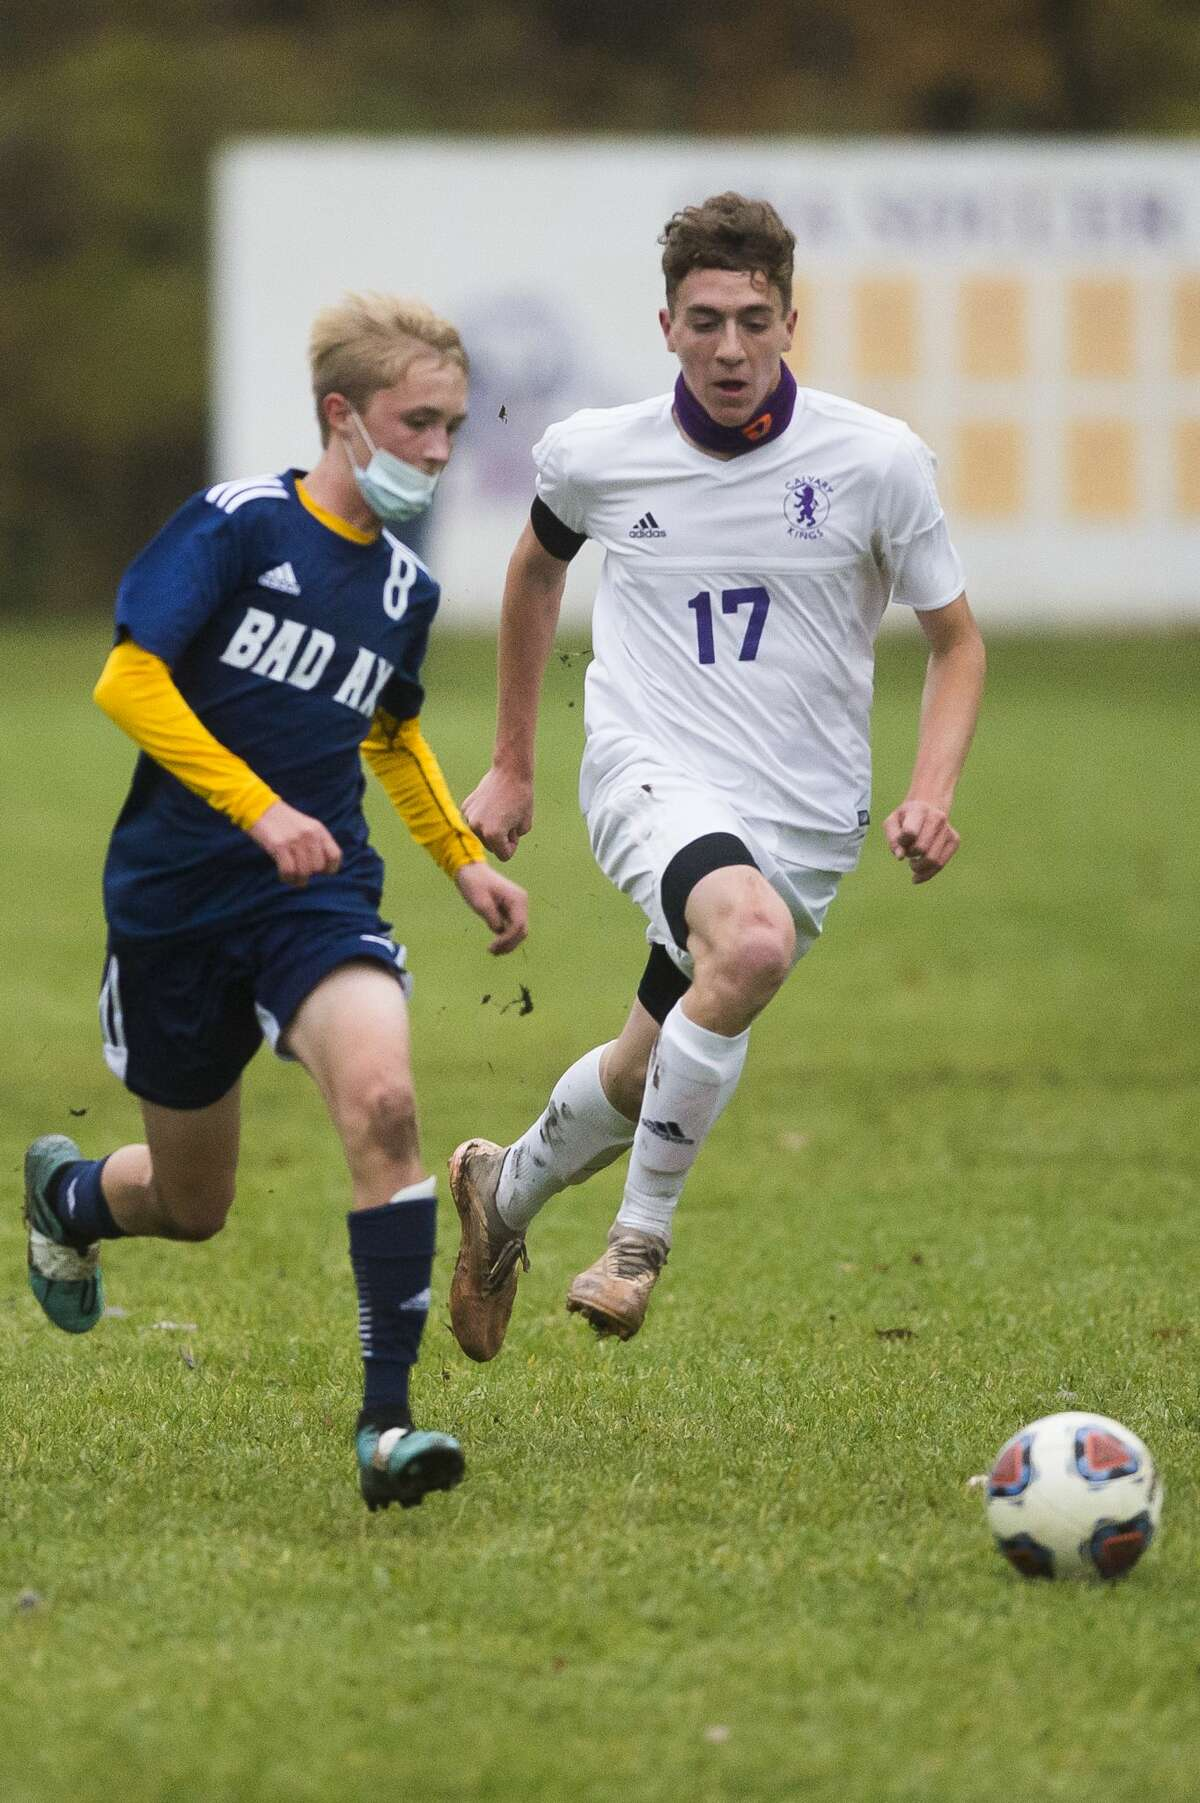 Calvary Baptist's Toby Stauffer chases down the ball during a district final game against Bad Axe Thursday, Oct. 22, 2020 at Calvary Baptist Academy. (Katy Kildee/kkildee@mdn.net)